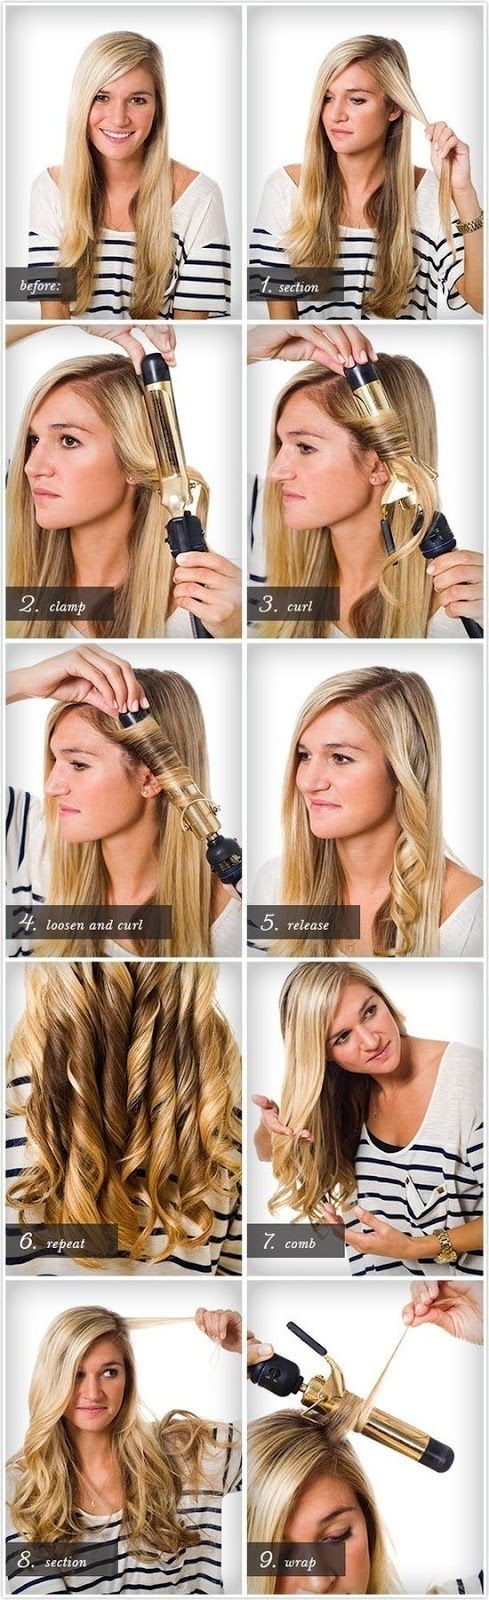 Best 25 perfect curls tutorial ideas on pinterest curling people always ask how i curl my hair this is a perfect tutorial on solutioingenieria Choice Image